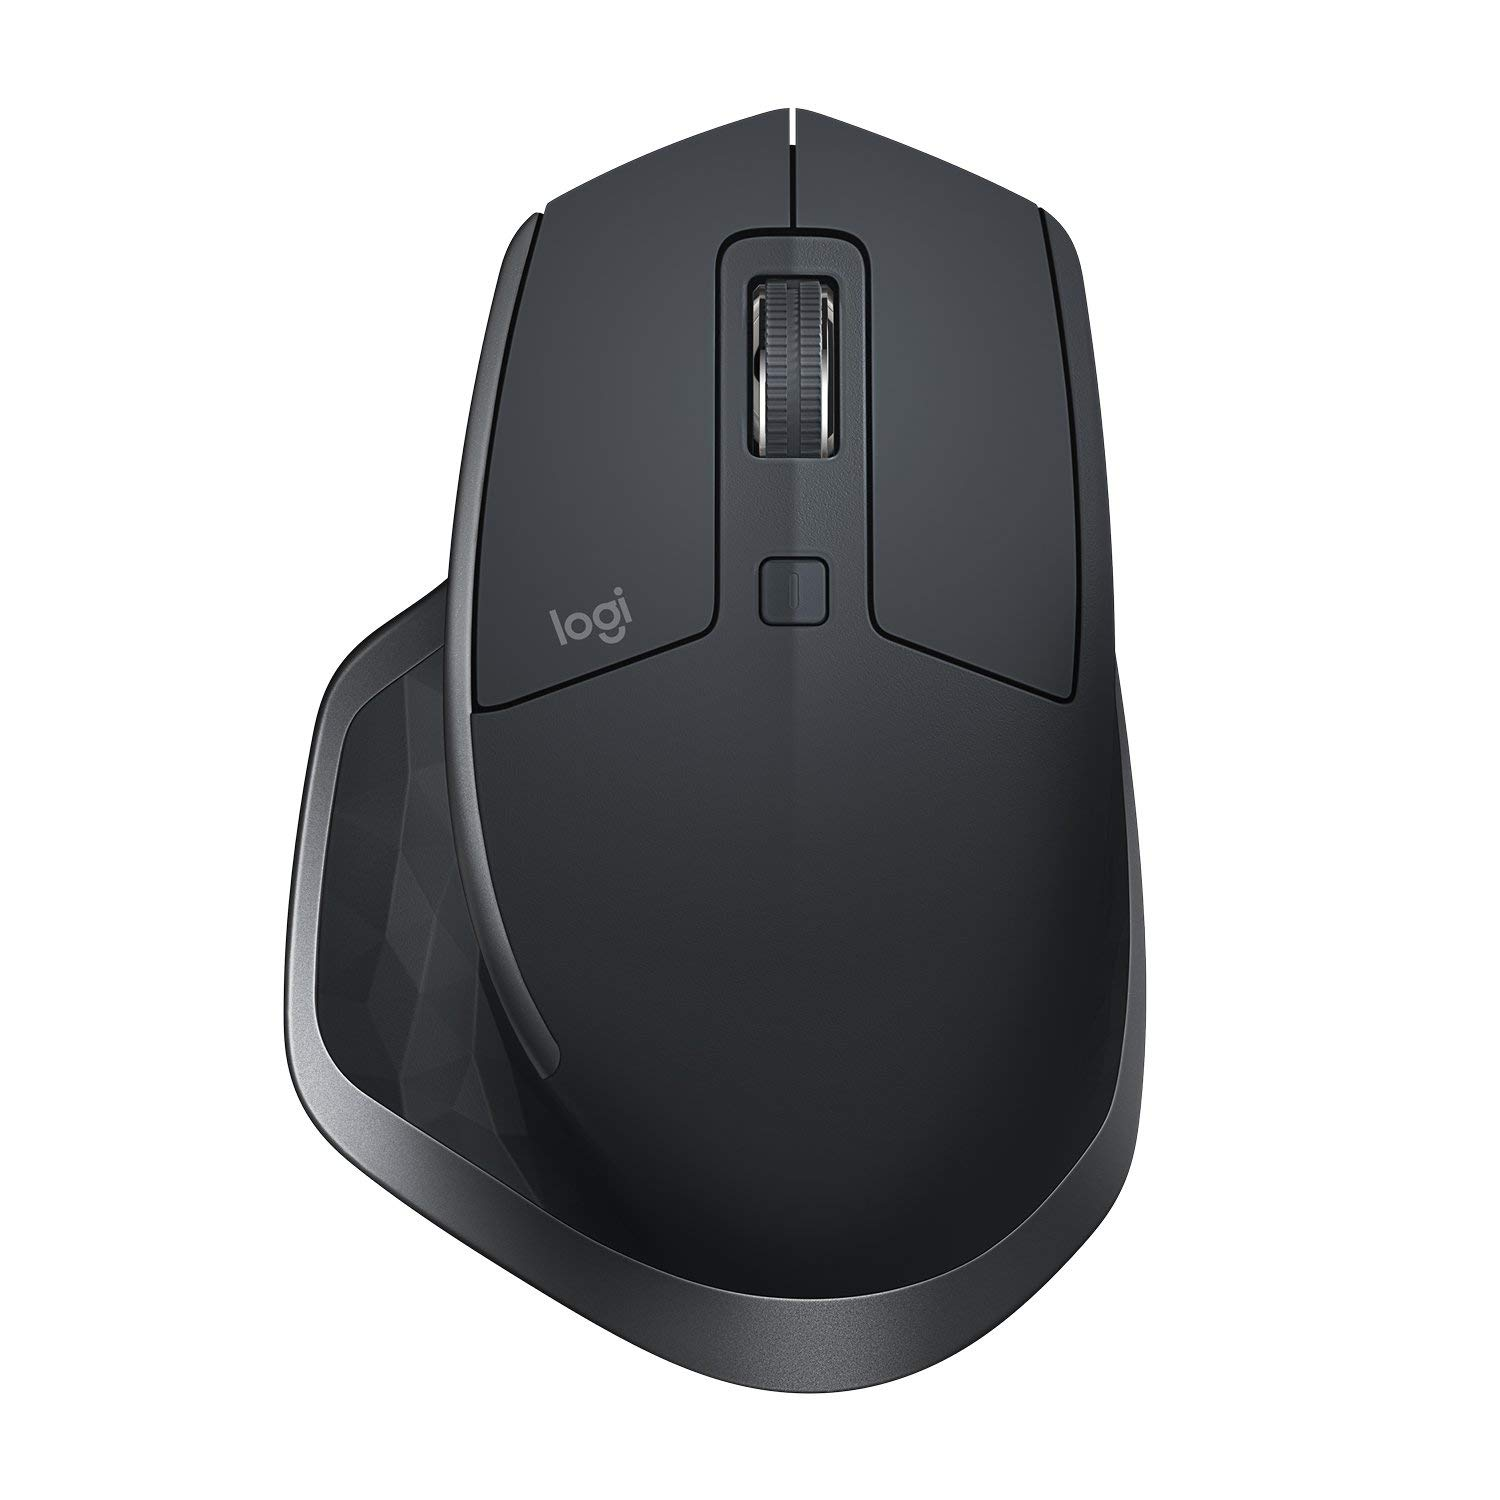 Graphic Designers Best 2019 Top Creative Mice Just™ Mouse 5 For wRTaxET